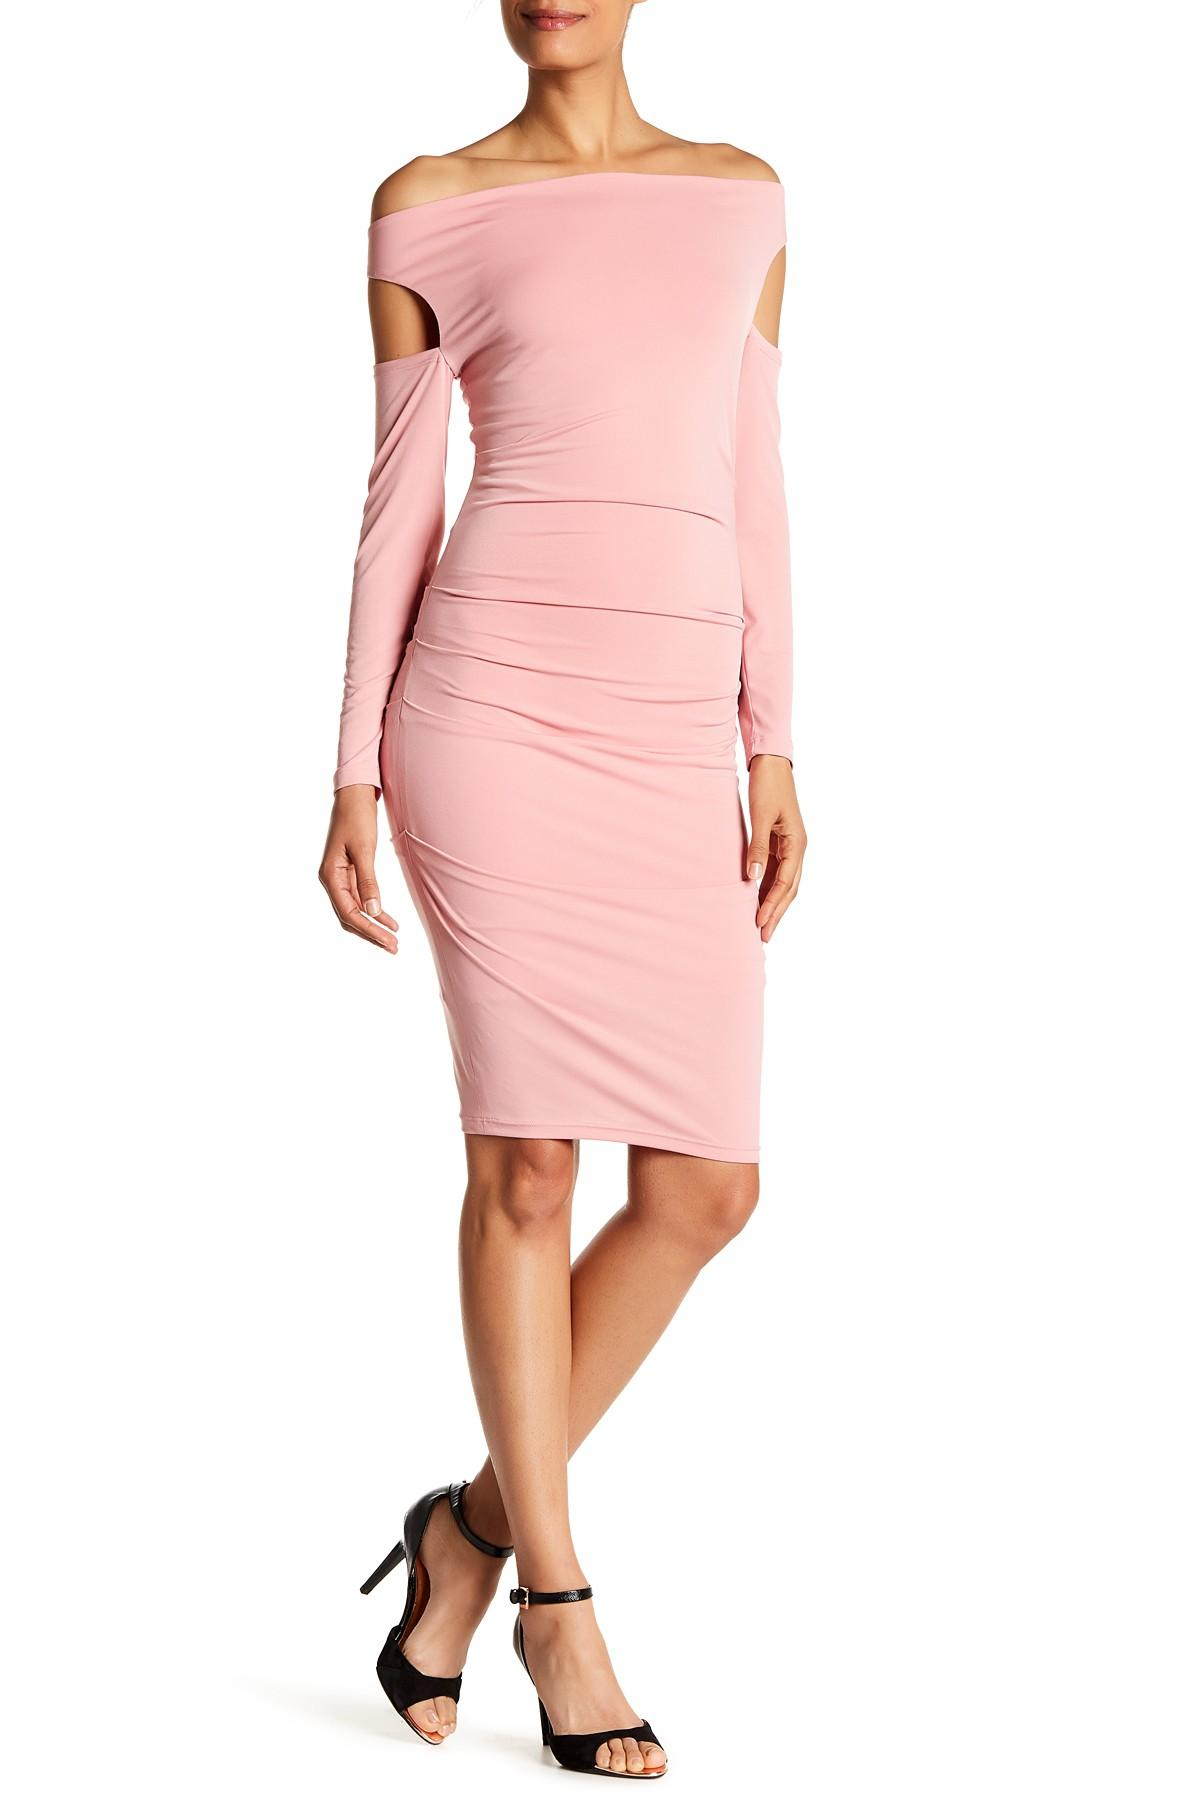 Maria bianca nero Margeaux Dress in Pink